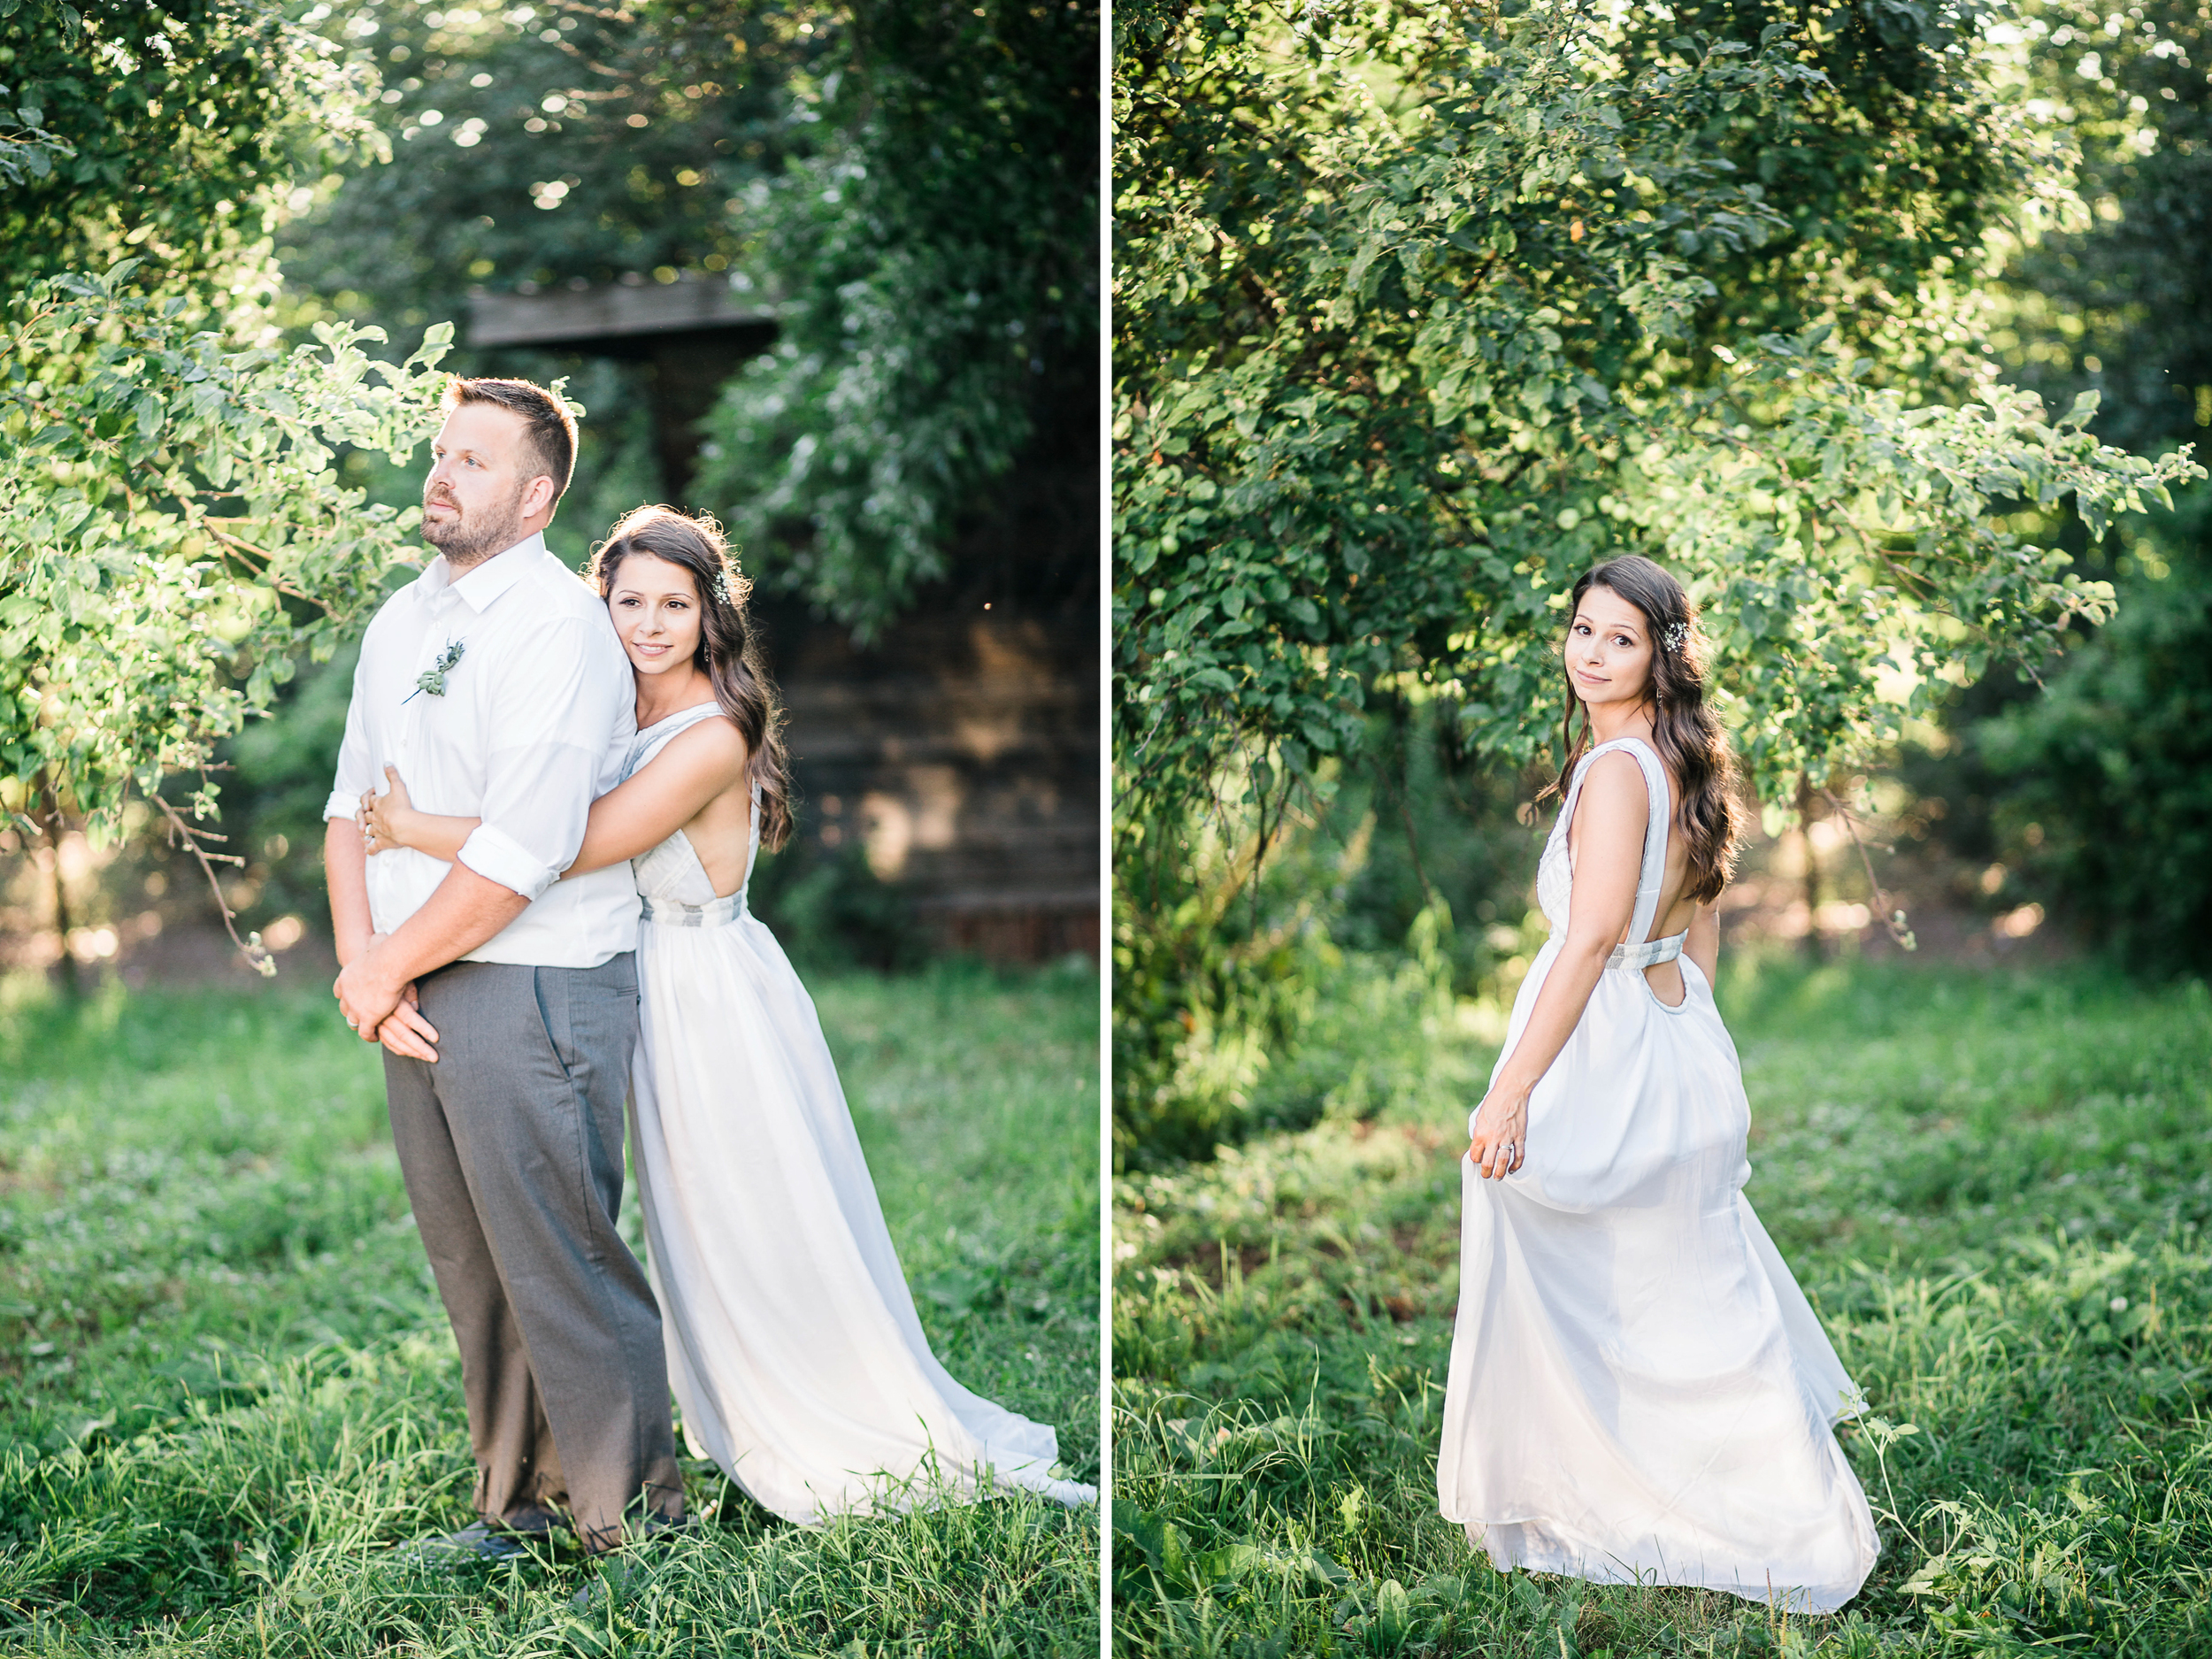 Before we left for the evening, Rachel and Jim agreed to come outside for a few last portraits as the sun was setting and we were SO GLAD they did! It was GORGEOUS LIGHTING.